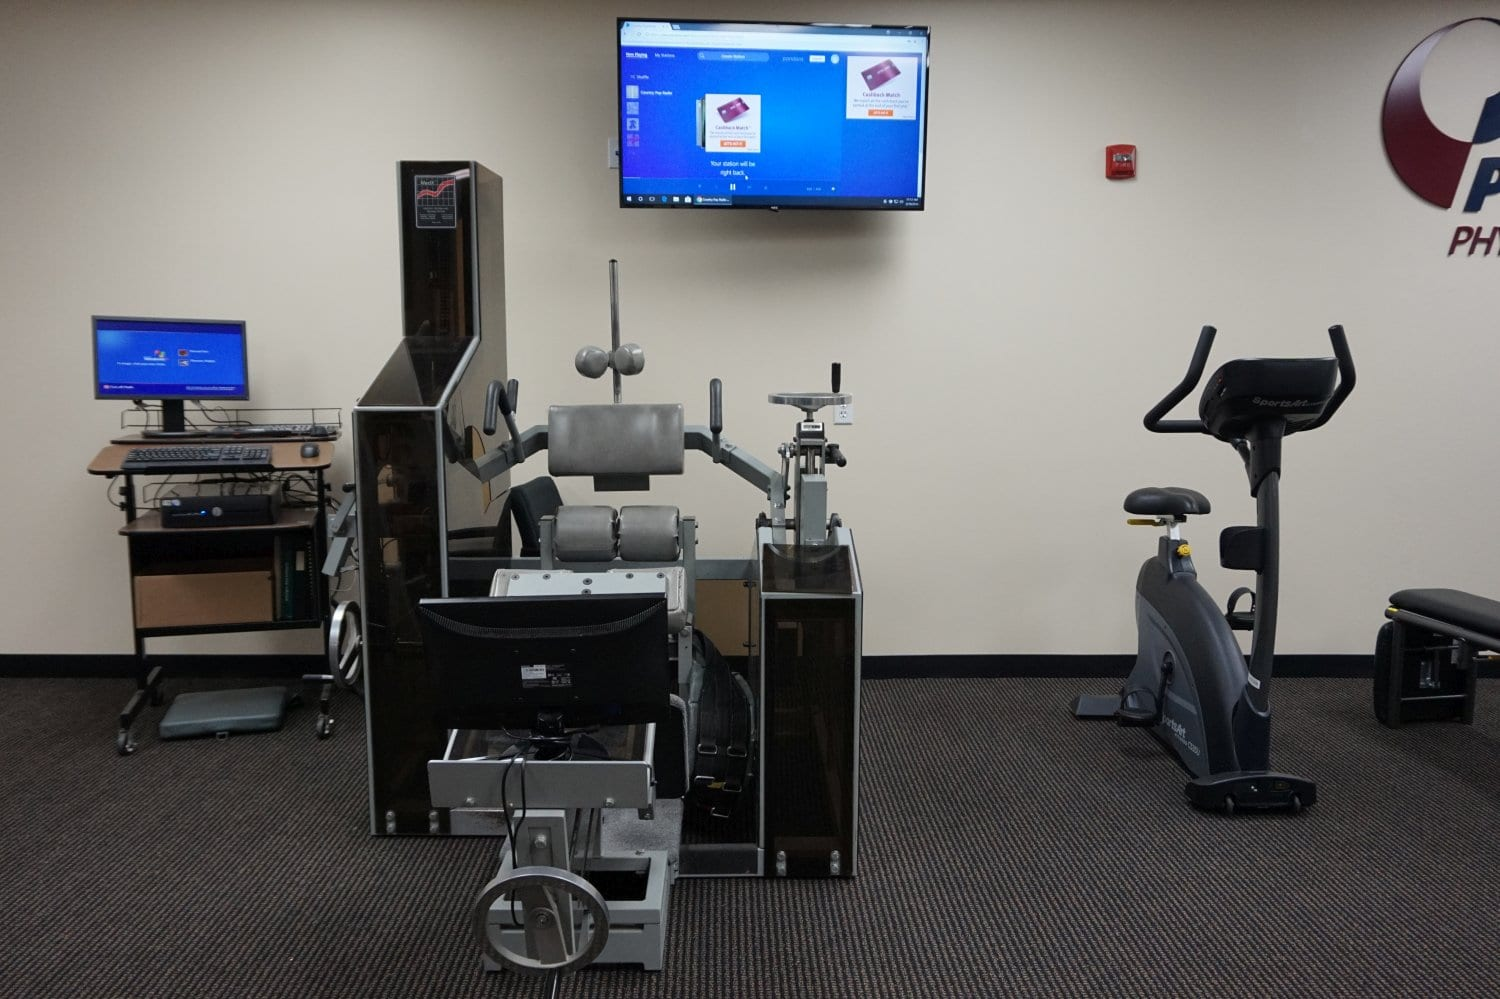 This image shows equipment used for physical therapy at our clinic in Winchester Massachusetts.